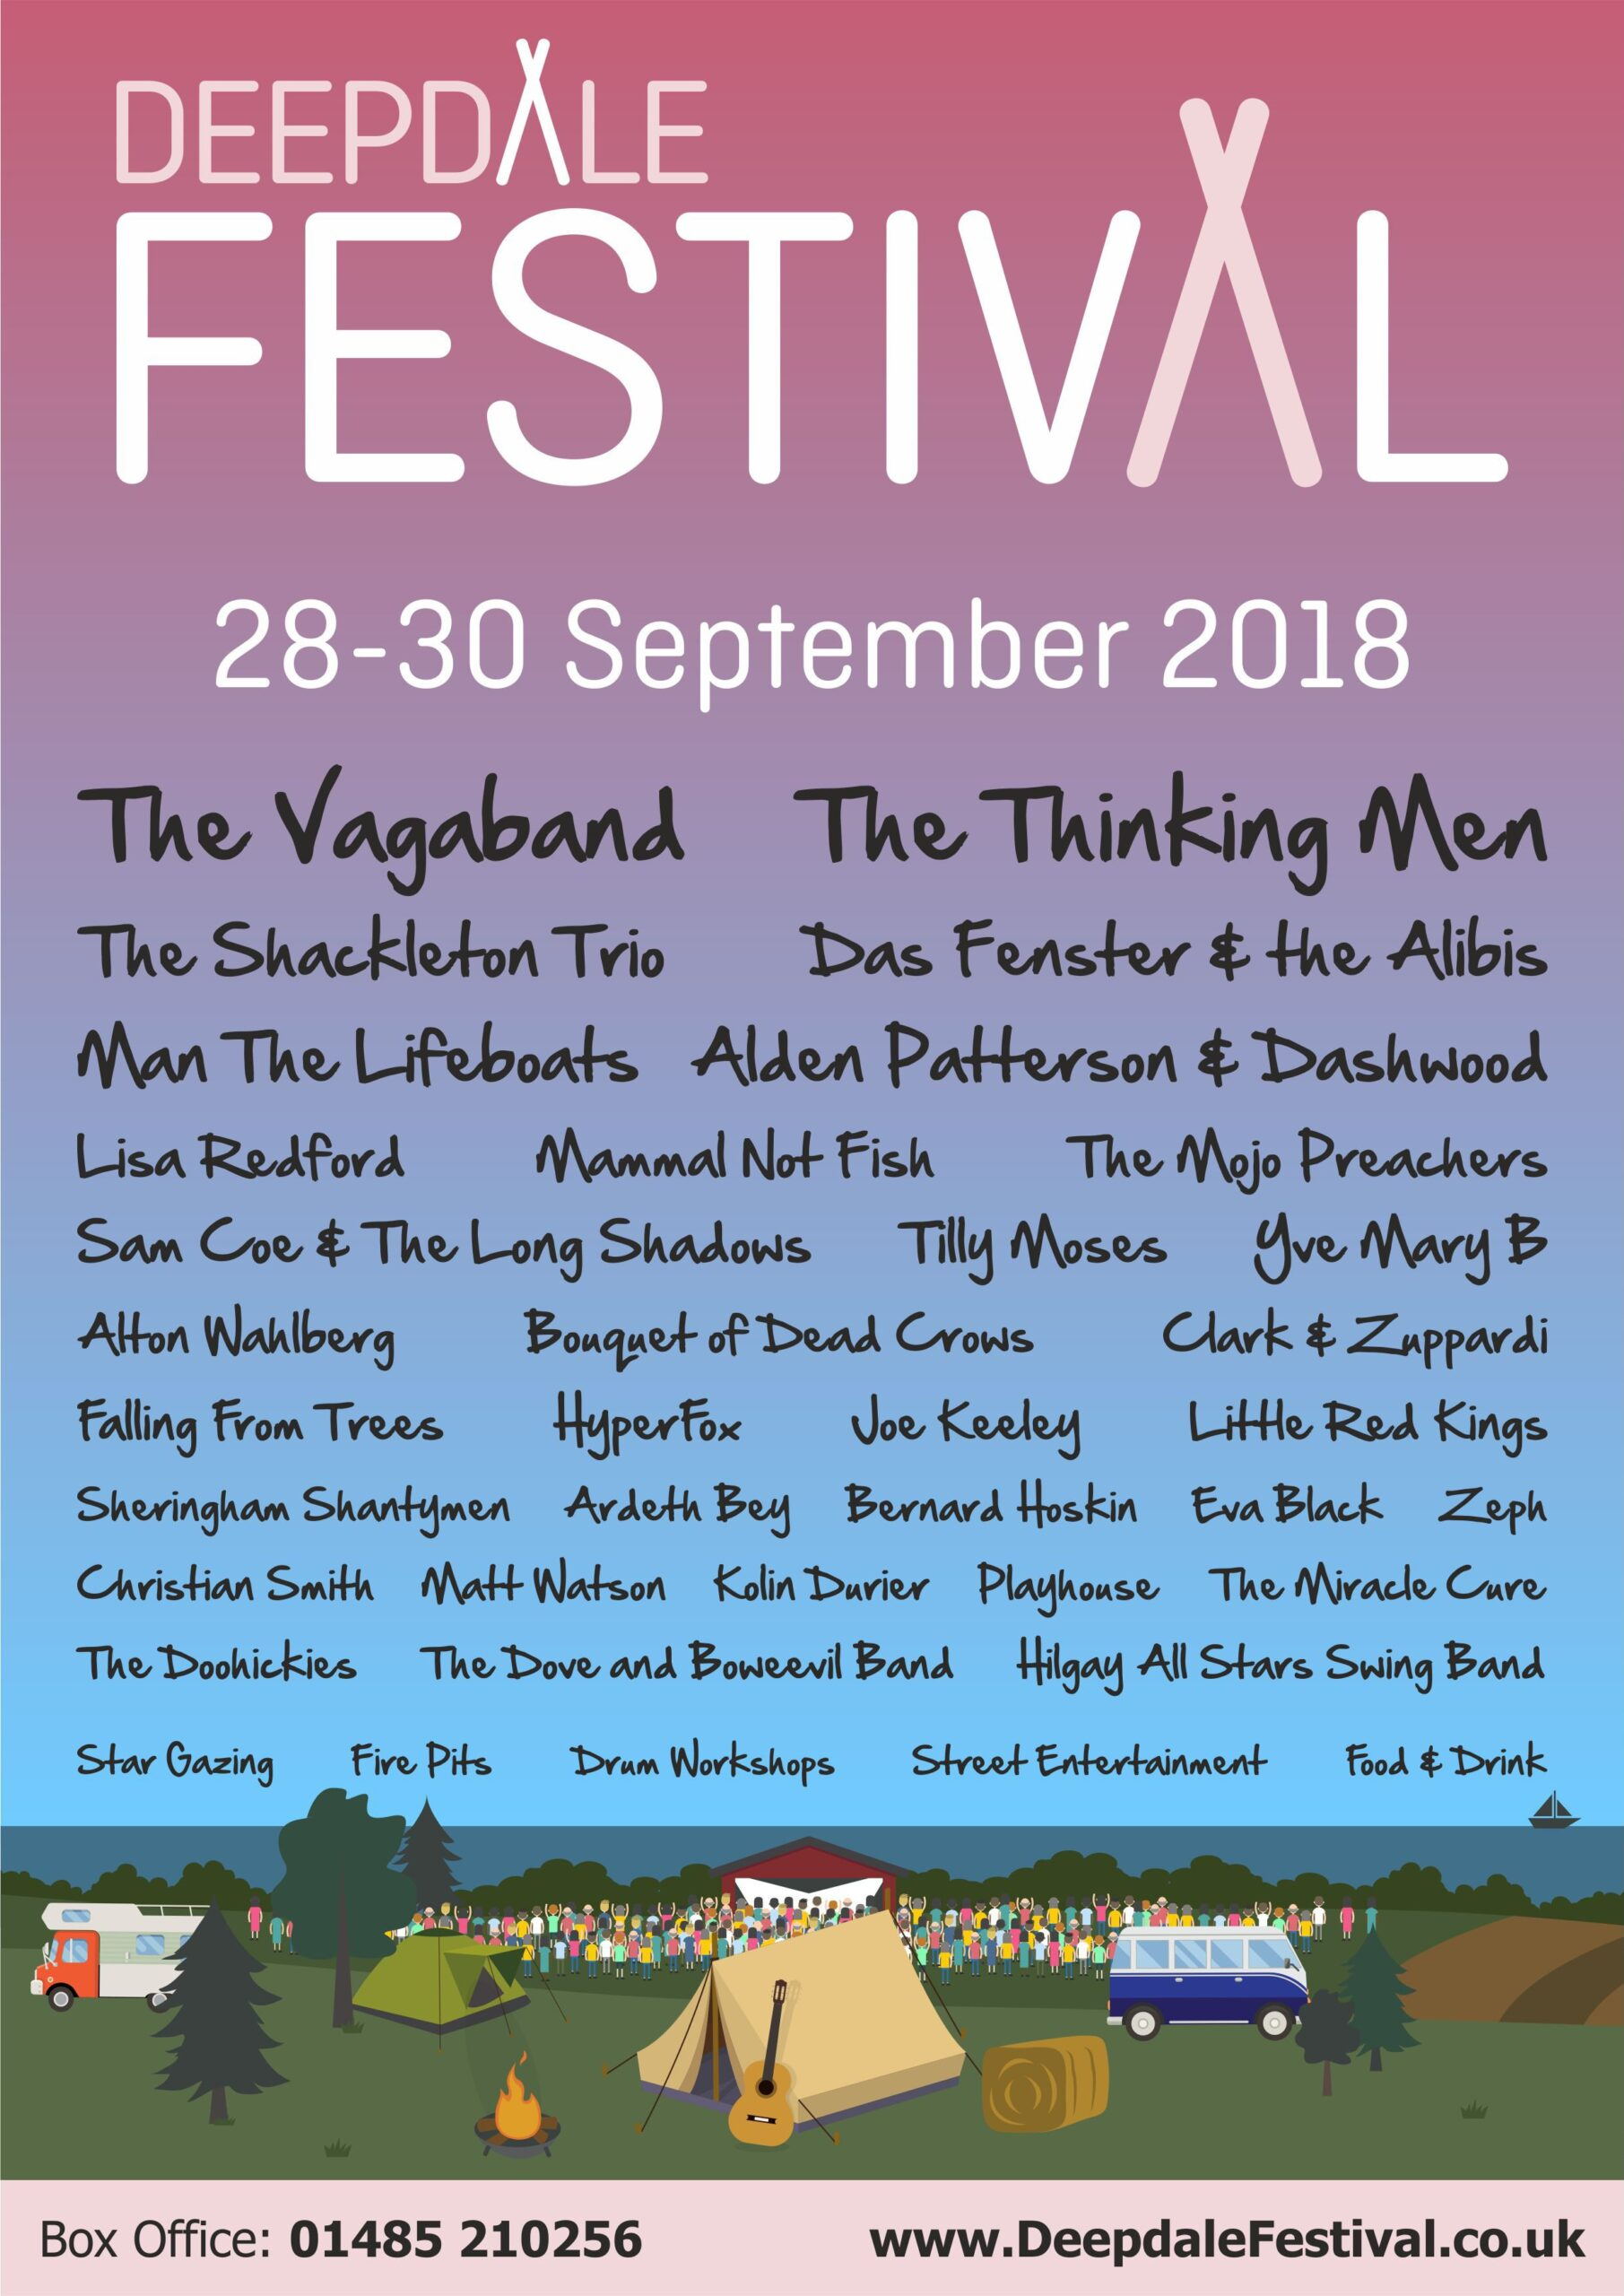 Deepdale Festival - Friday 28th to Sunday 30th September 2018